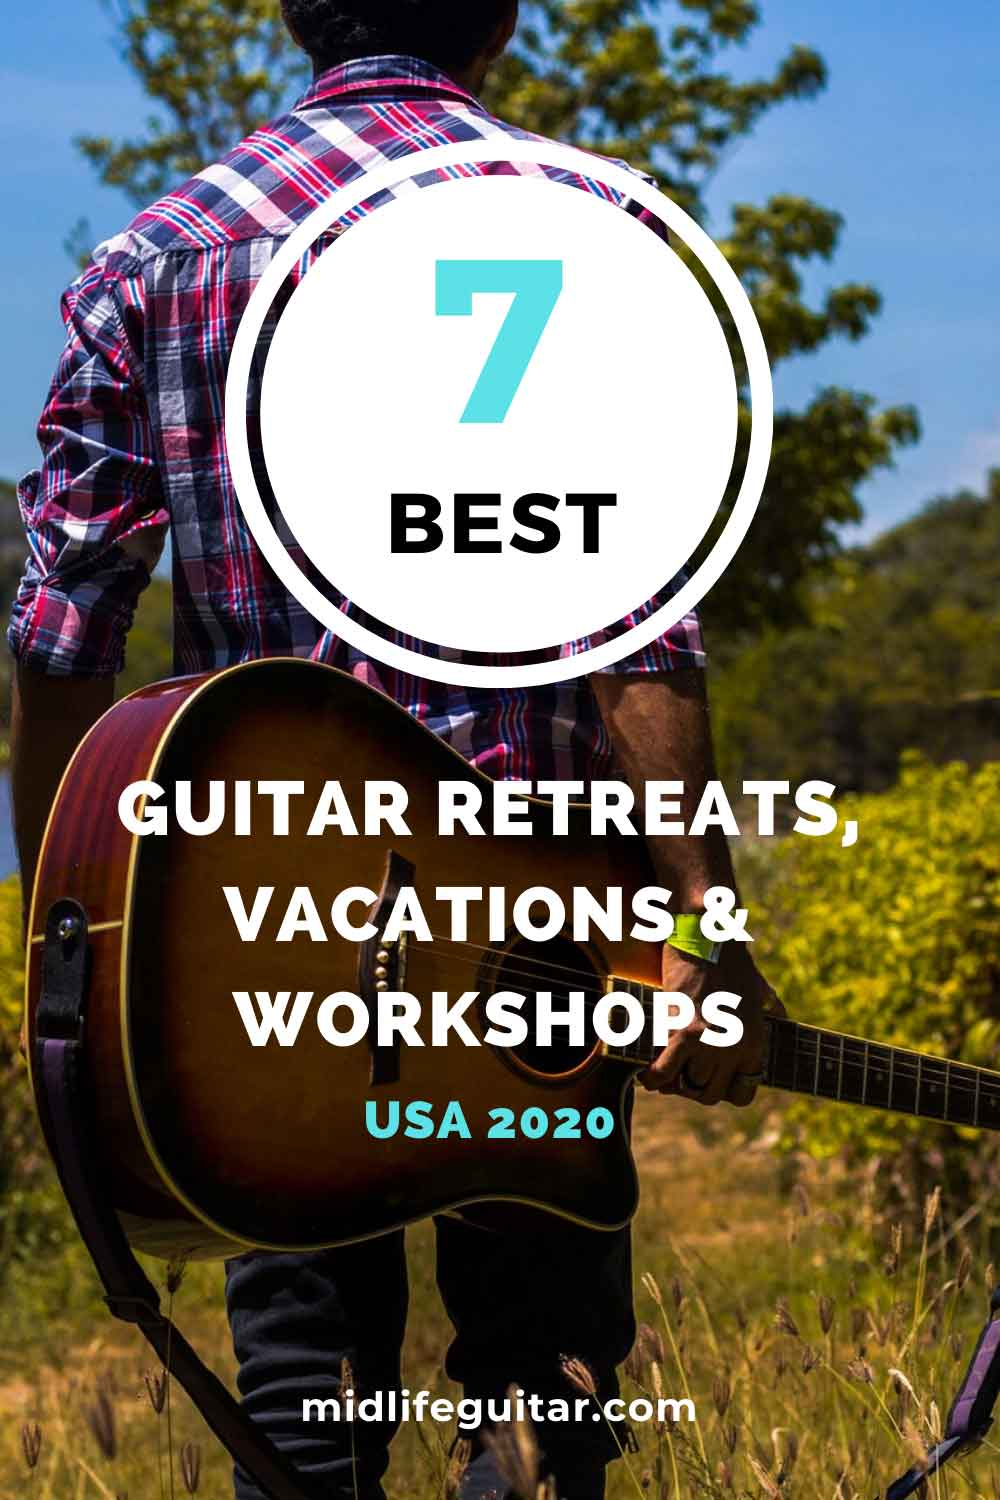 Best Guitar Retreats 2020